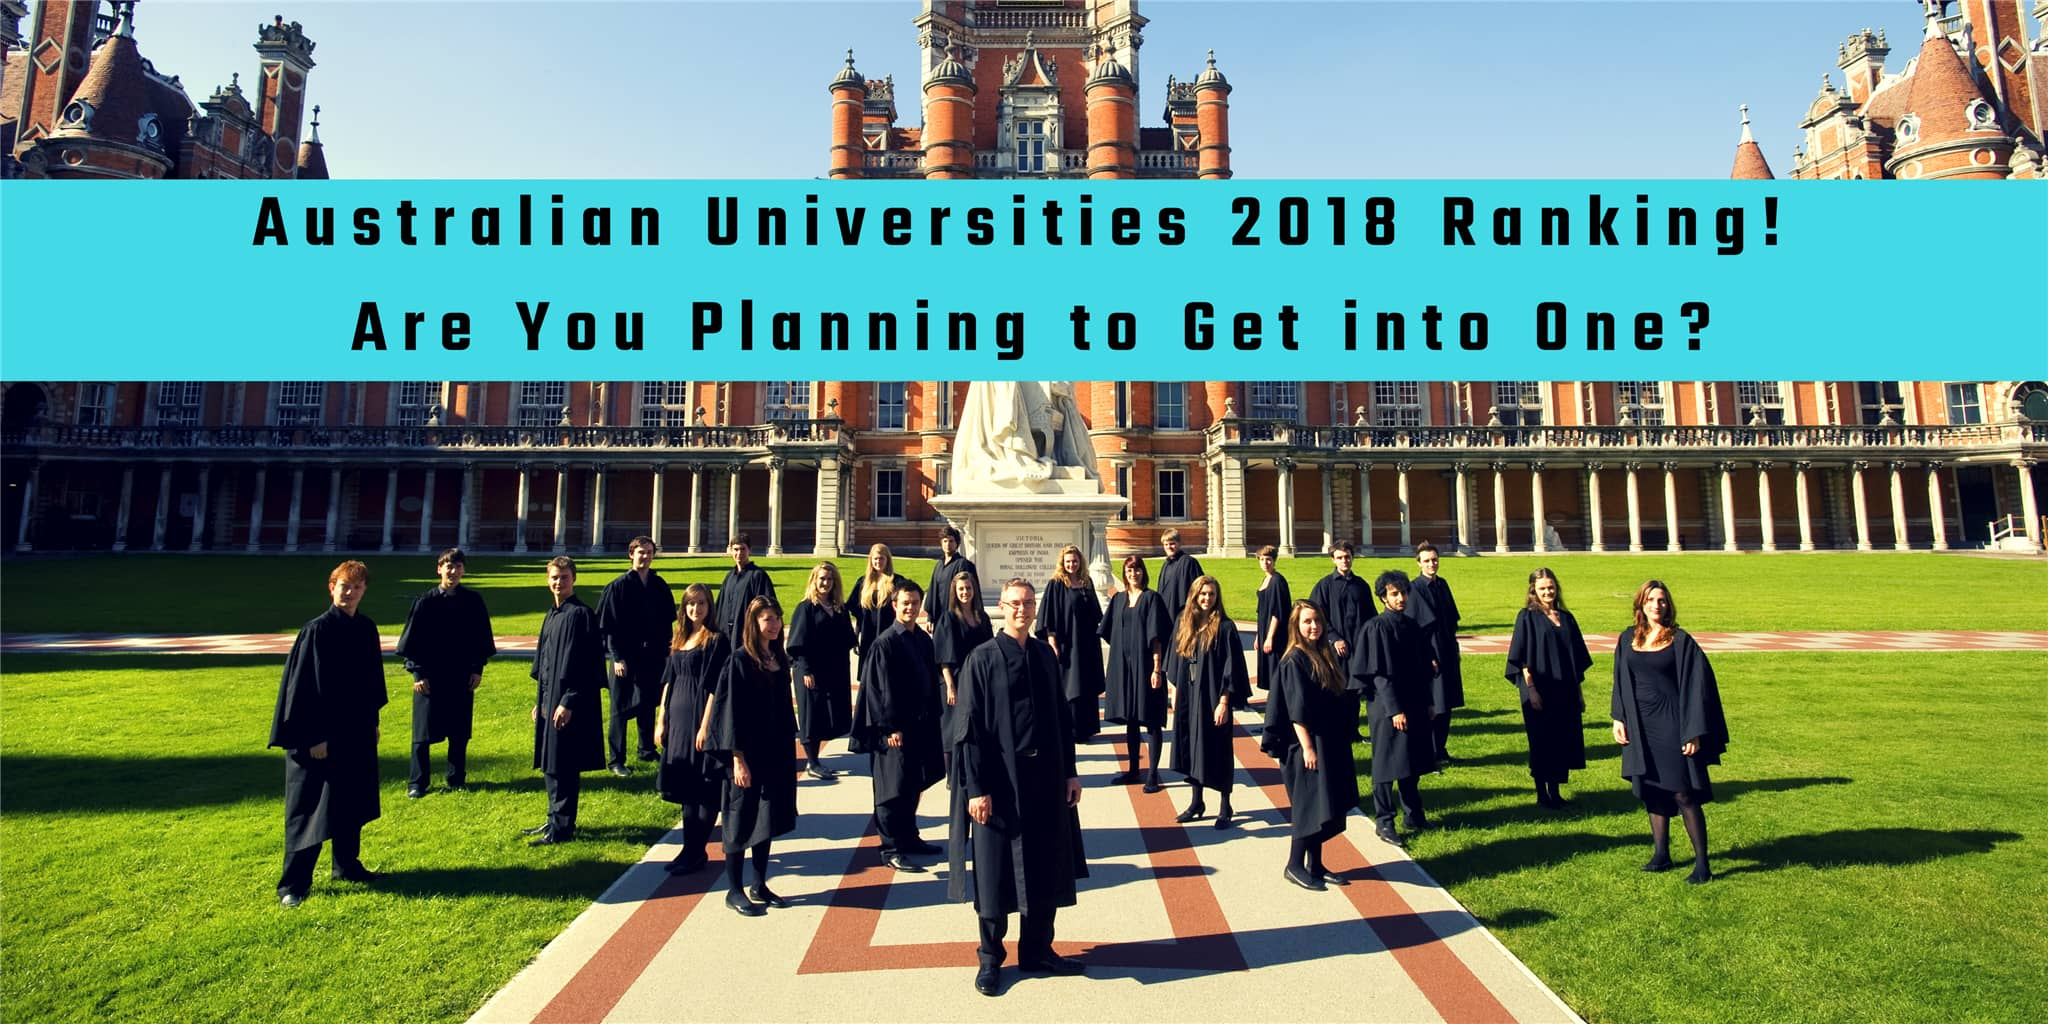 Australian Universities 2018 Ranking! Are You Planning to Get into One?